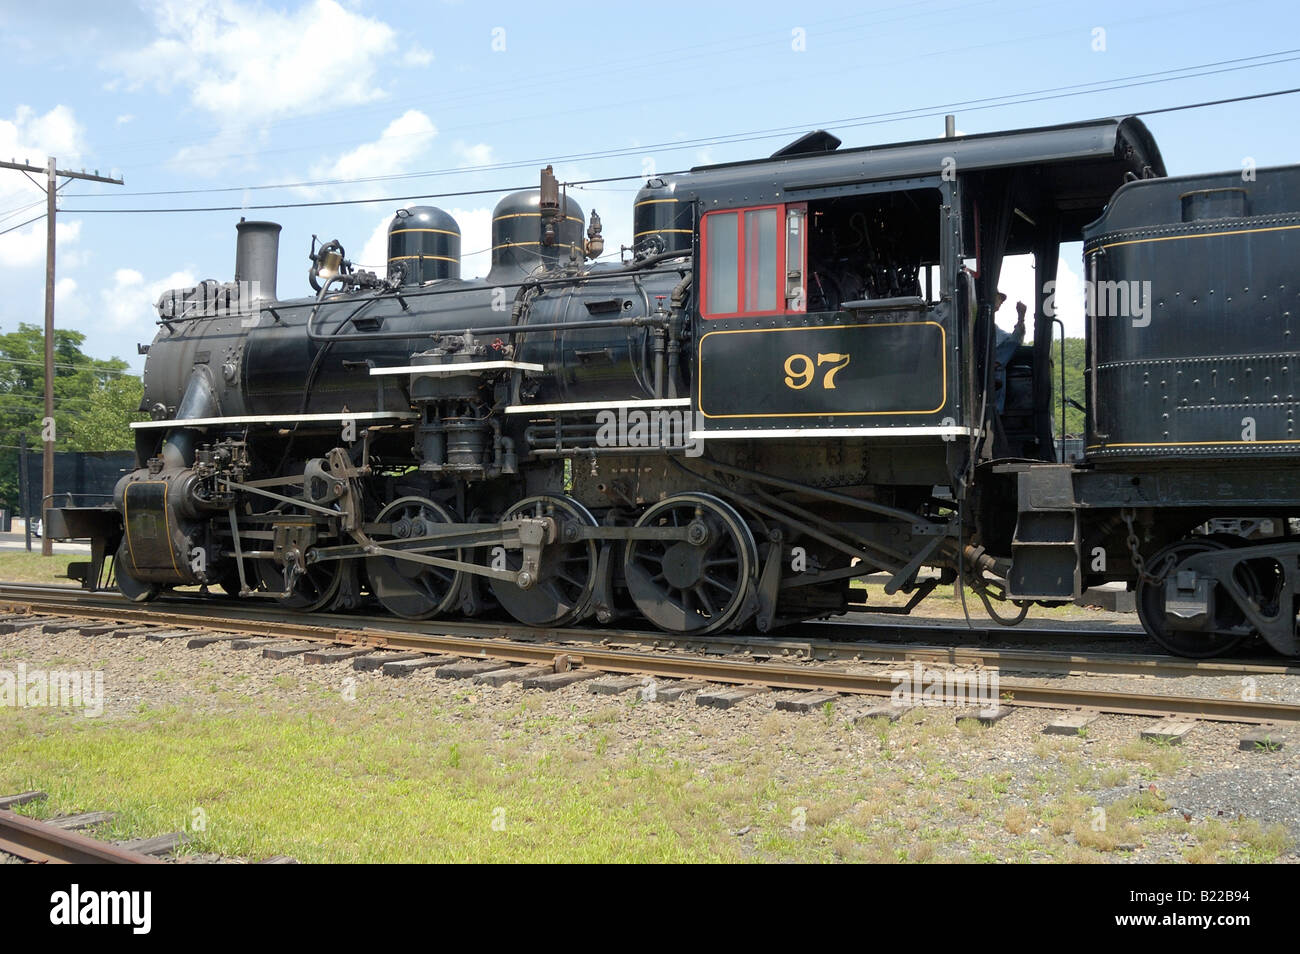 Essex steam train and riverboat images 82